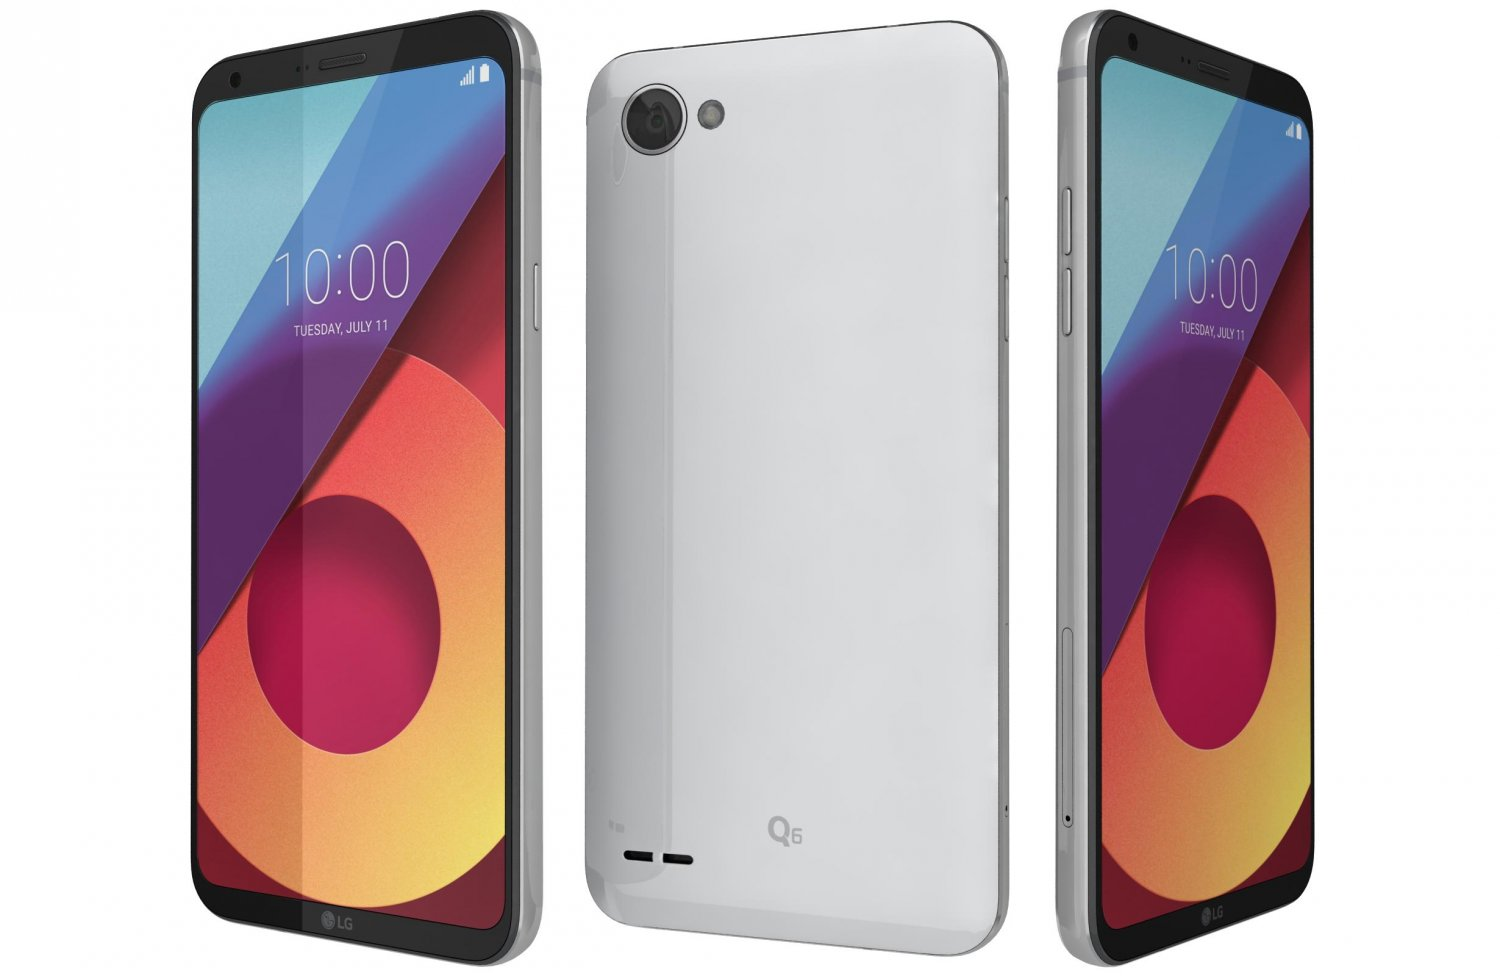 lg q6 m700 32gb octacore/3gb ram/13mp/5mp/5.5